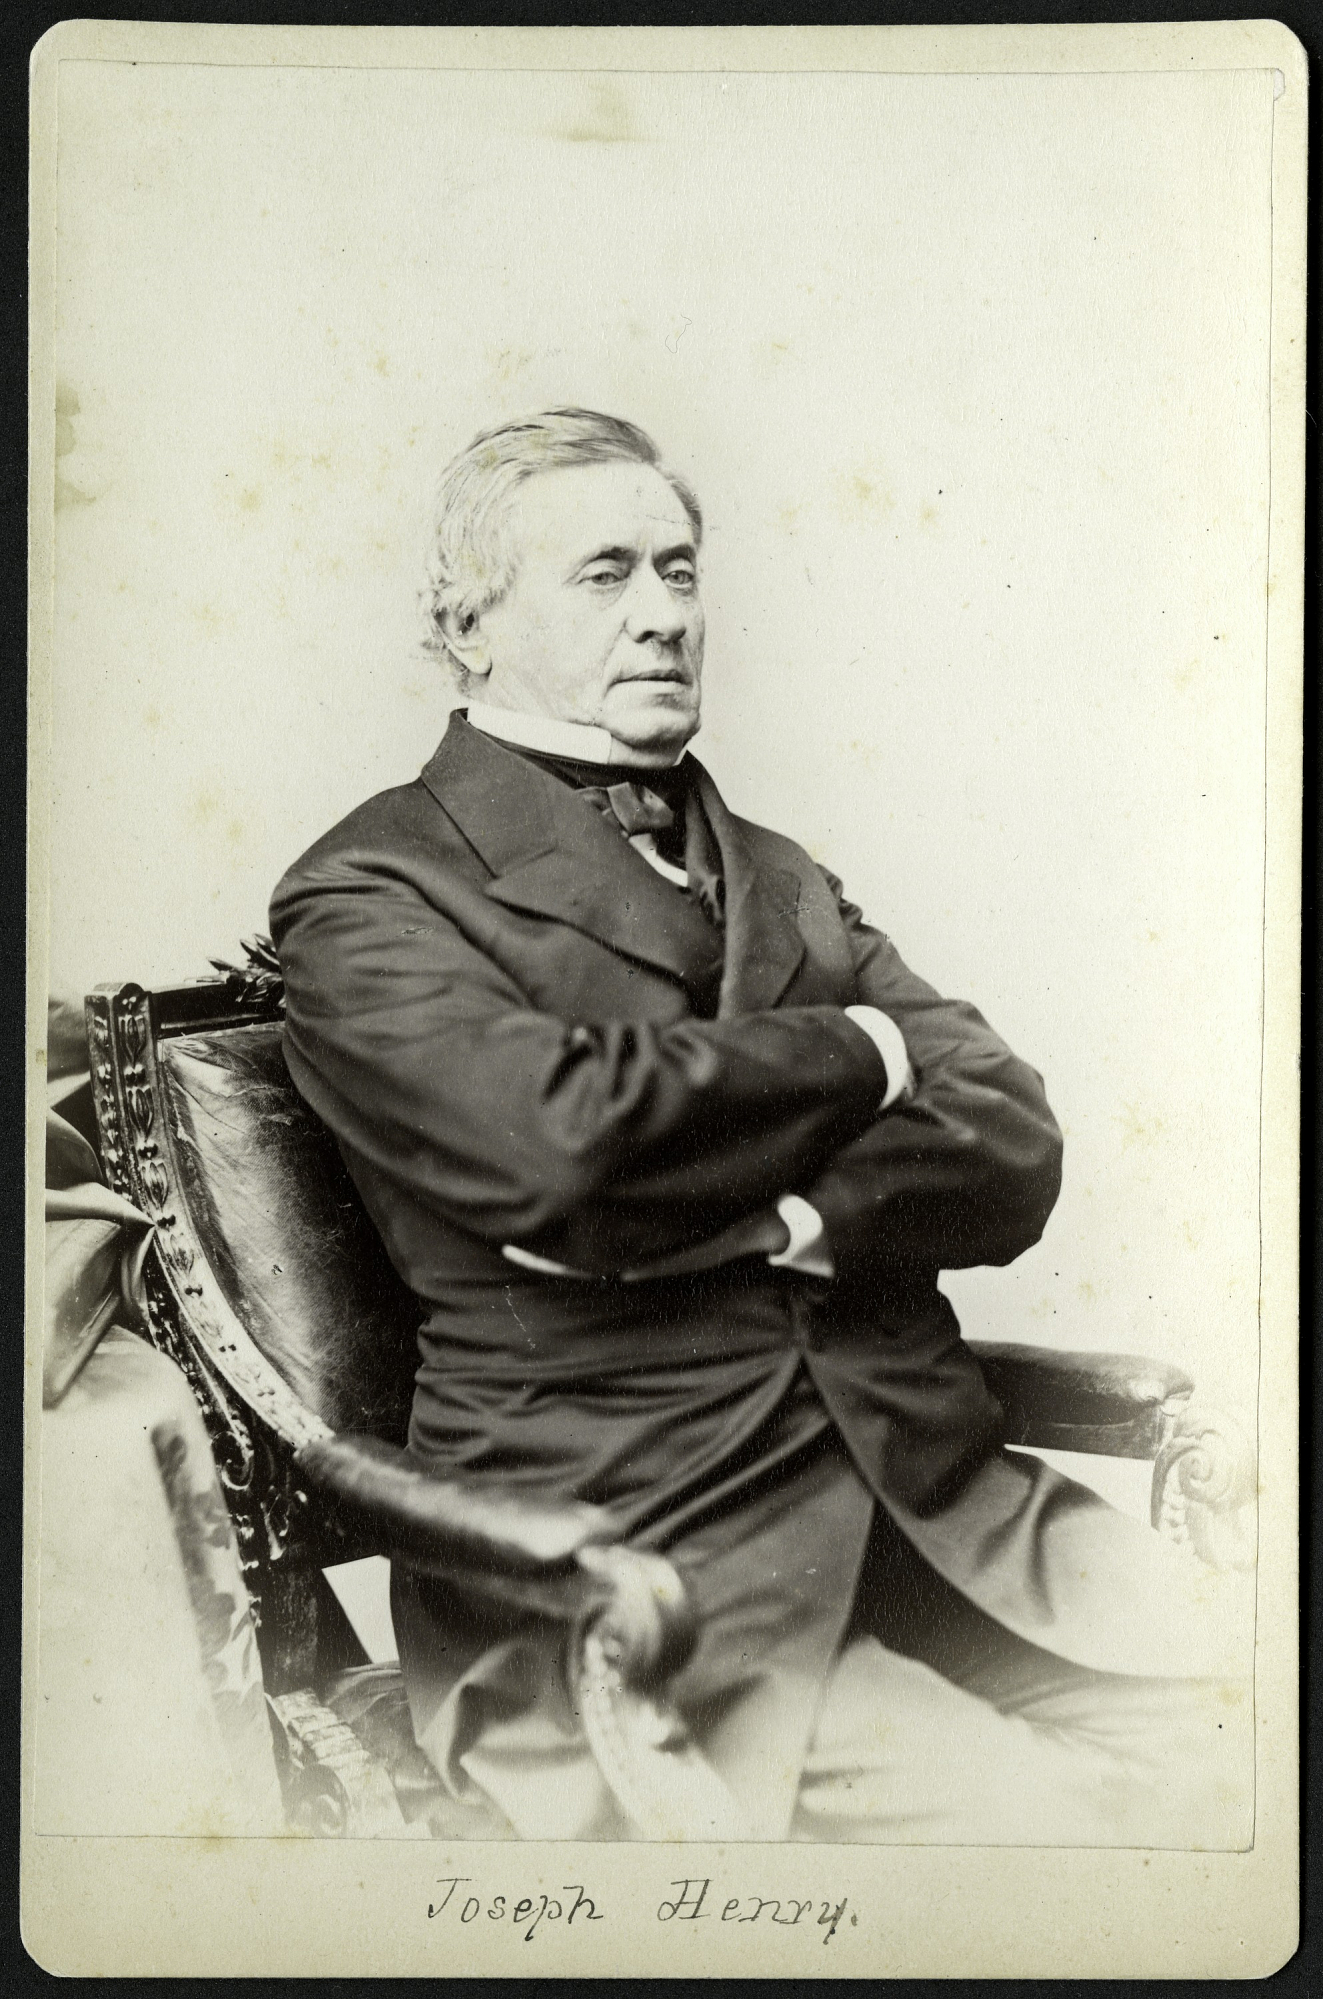 Portrait of Joseph Henry by renowned photographer Mathew Brady. Courtesy of the Smithsonian Institution Archives.